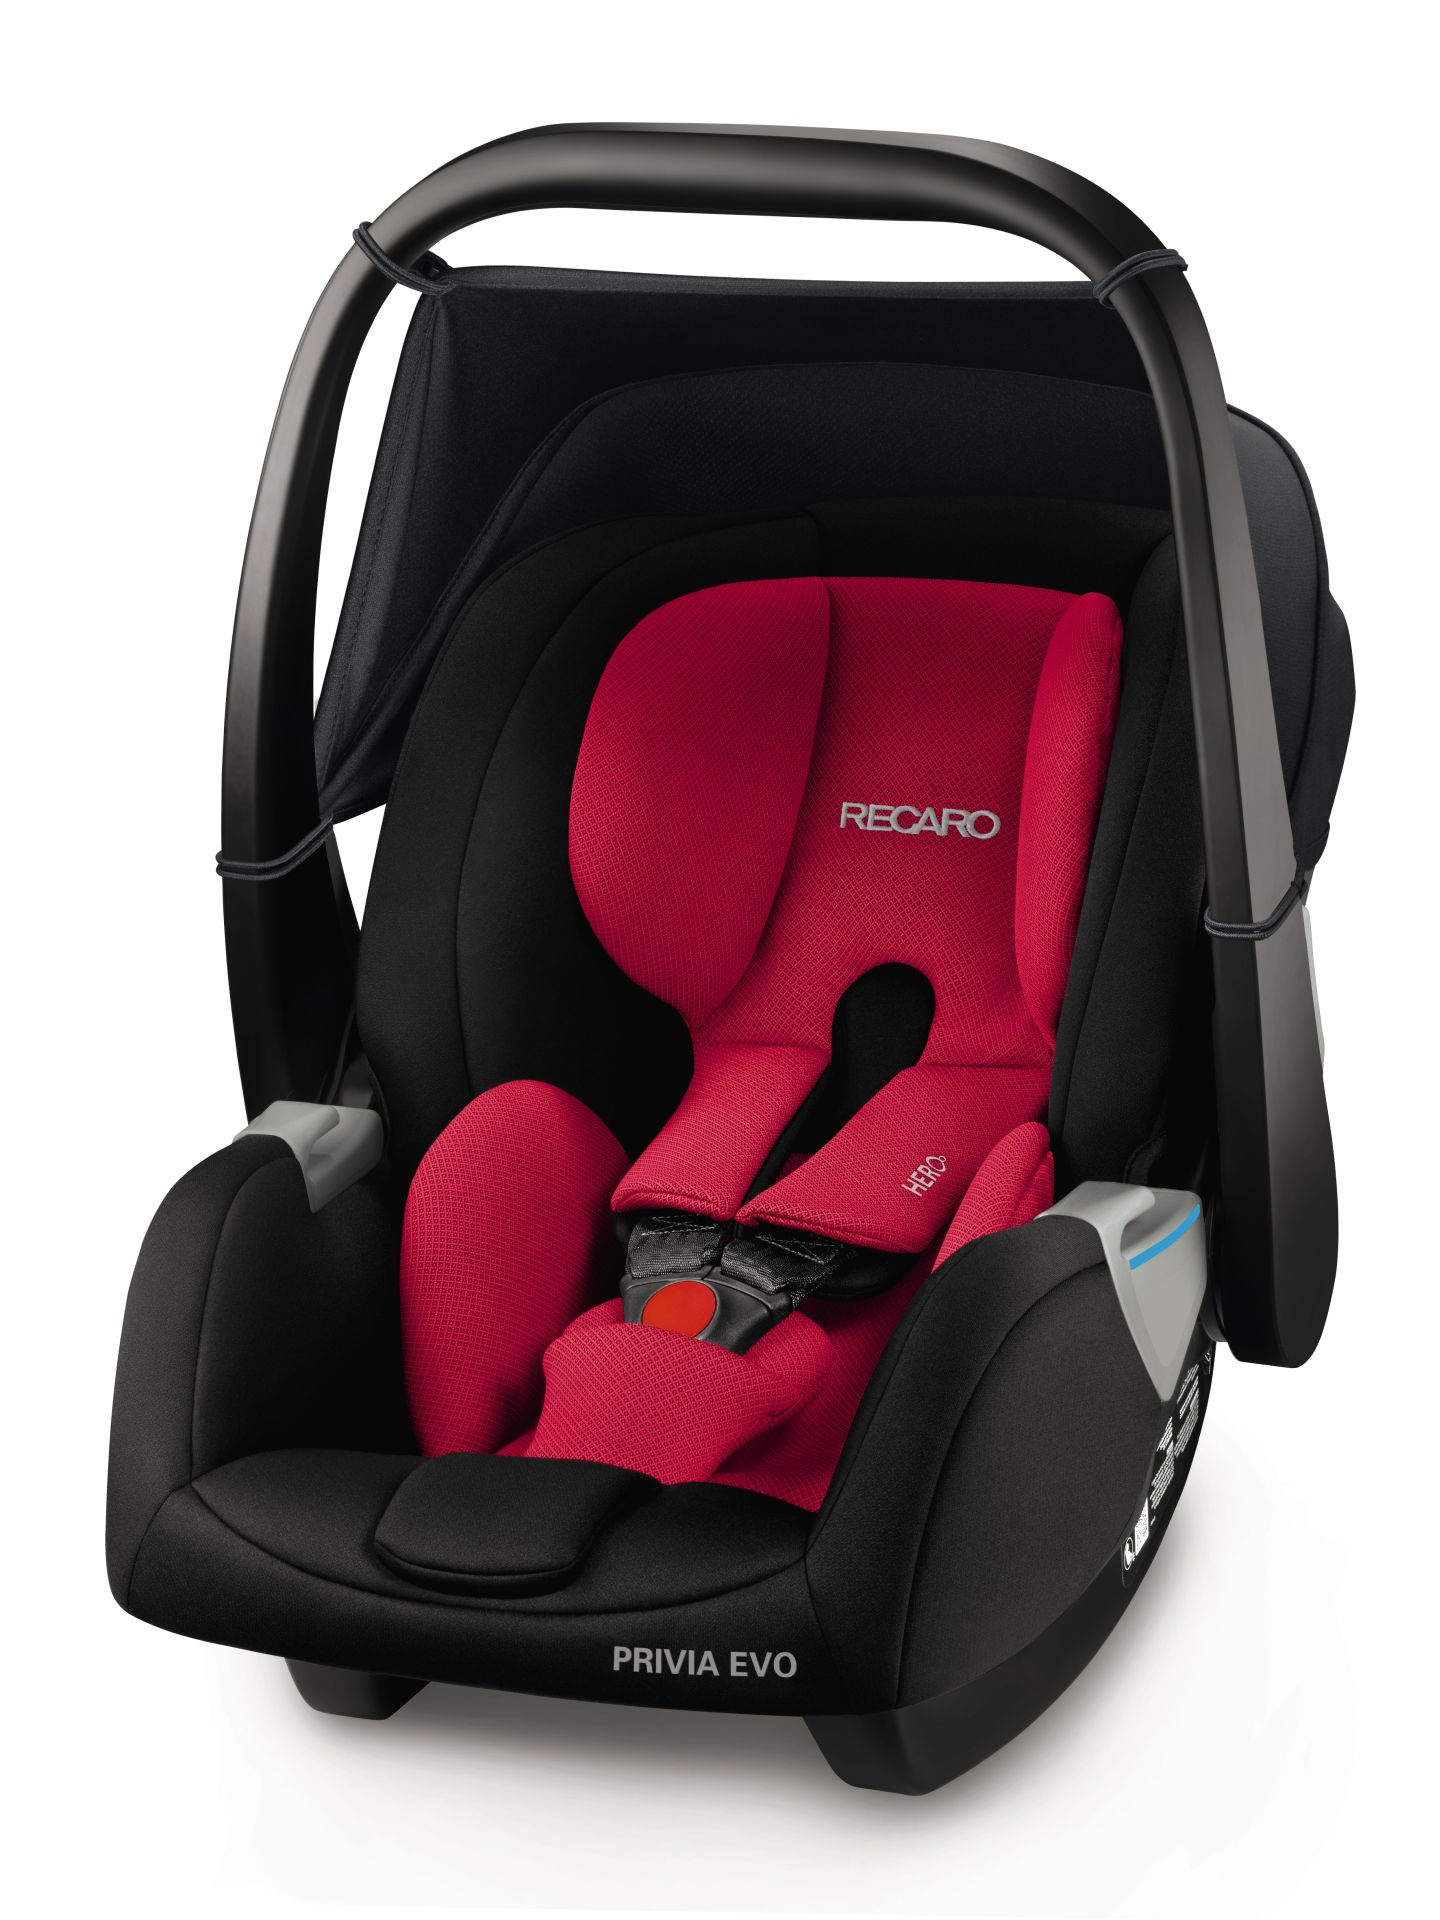 Most Suitable Baby Car Seats